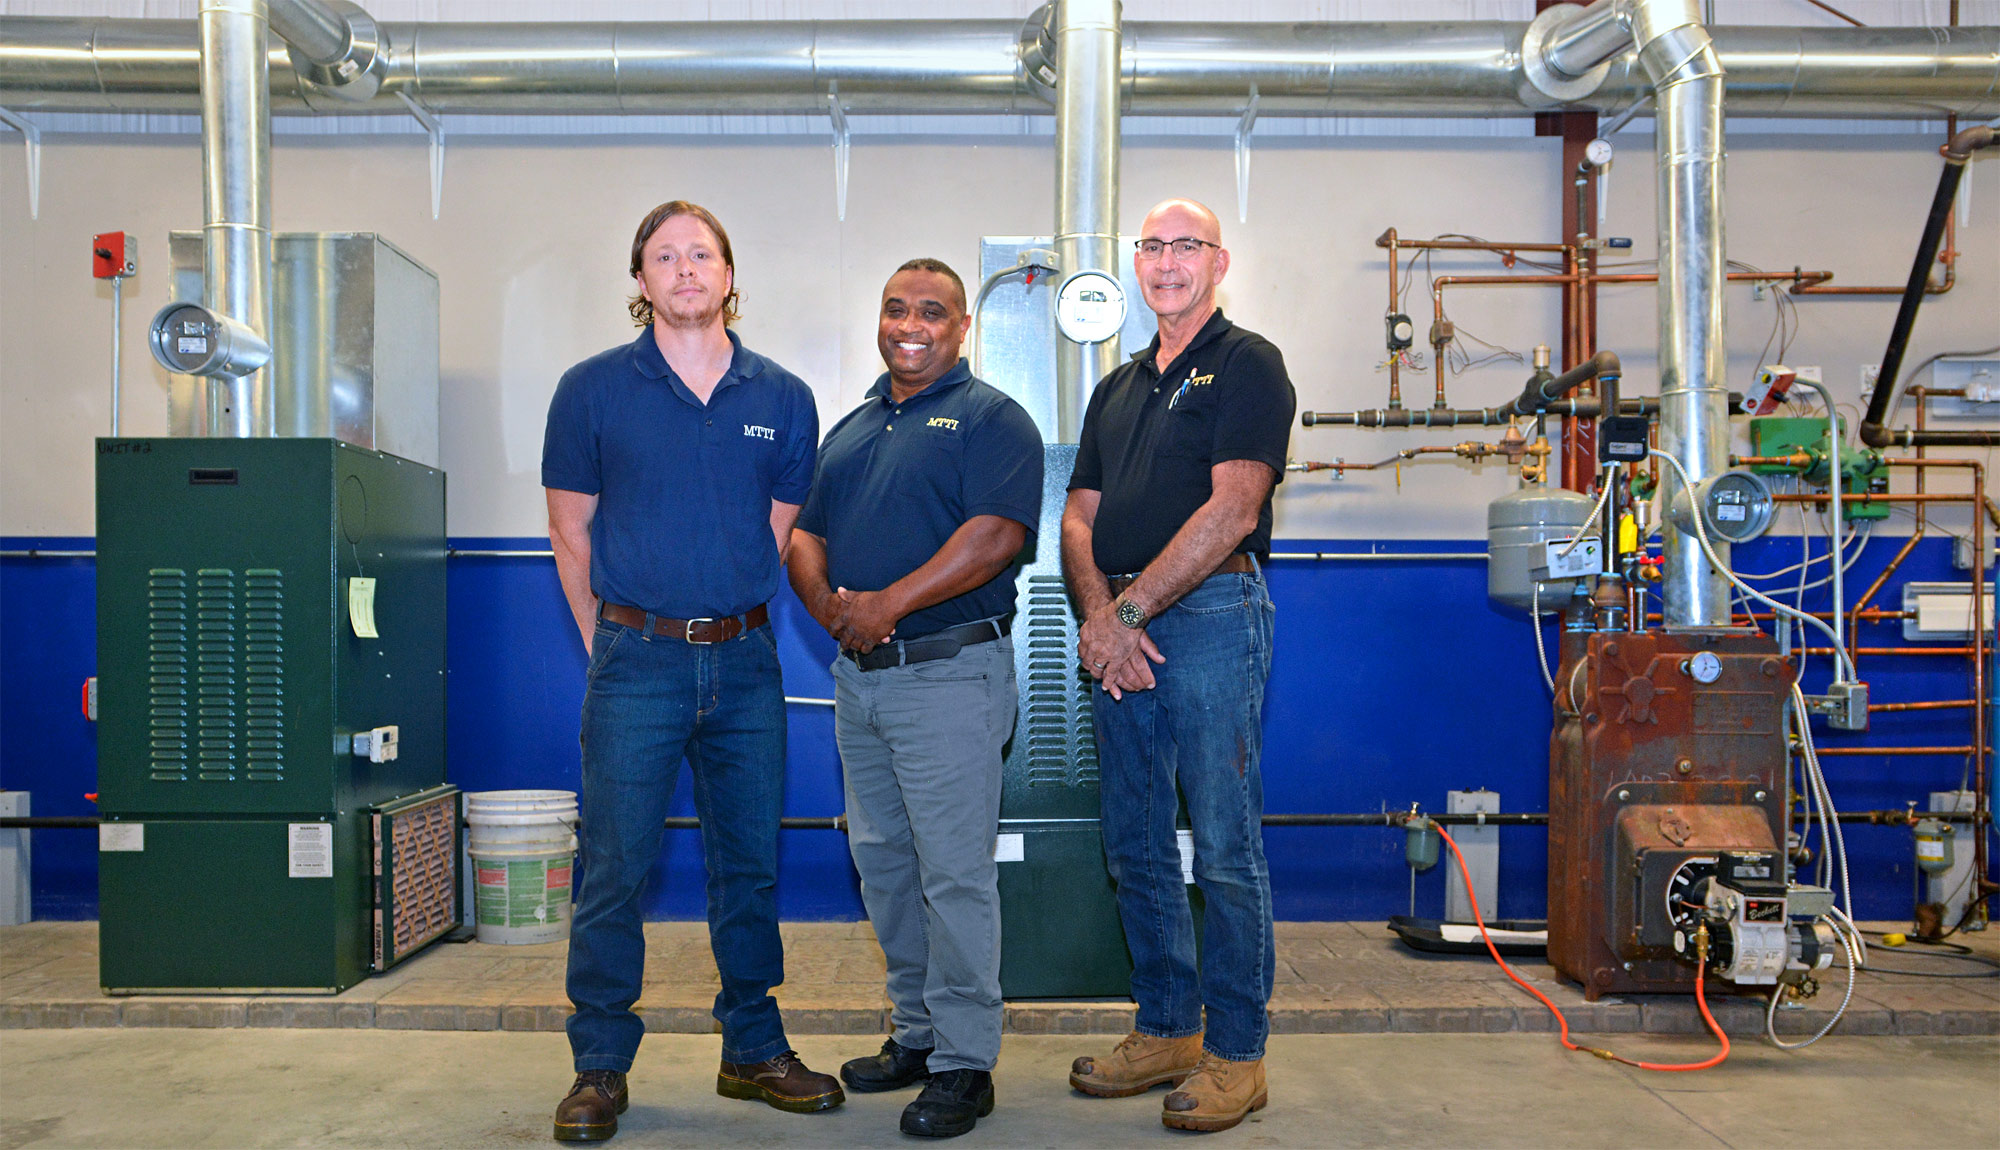 Asher Marshall, John Barbosa & Michael Siravo Are MTTI HVAC/R Instructors In Seekonk, MA.